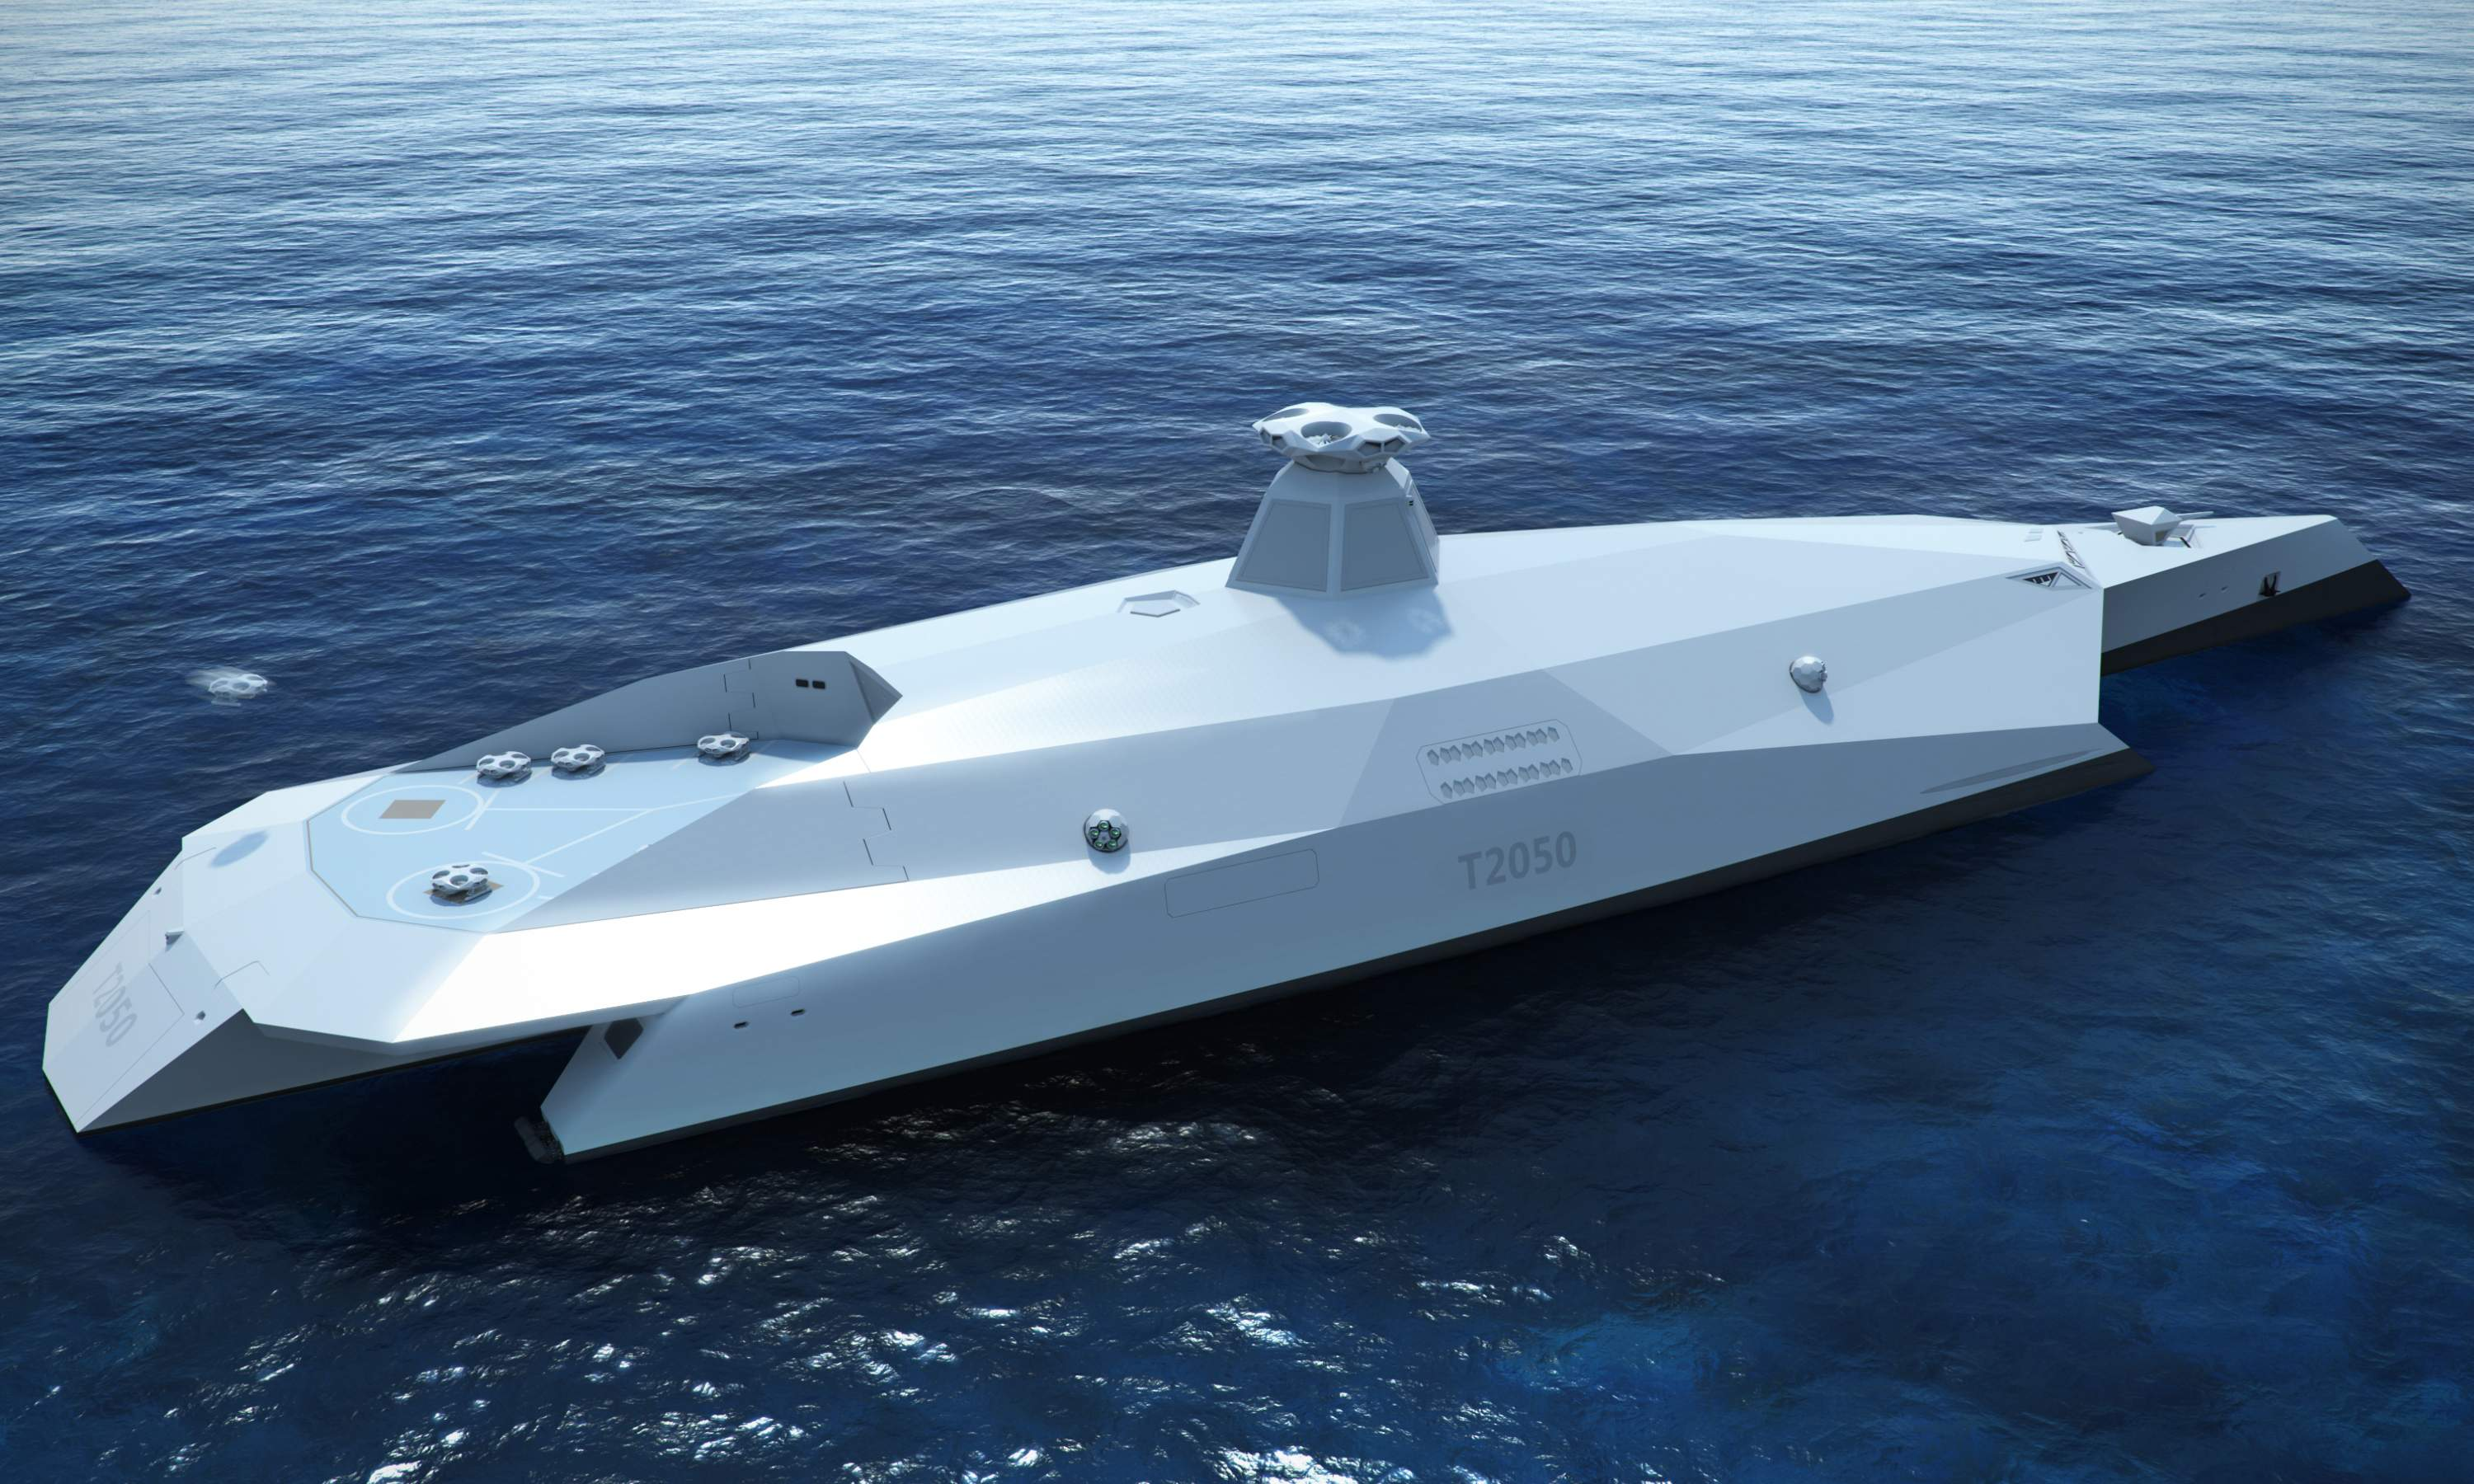 What Will The Battleship Of The Future Look Like?